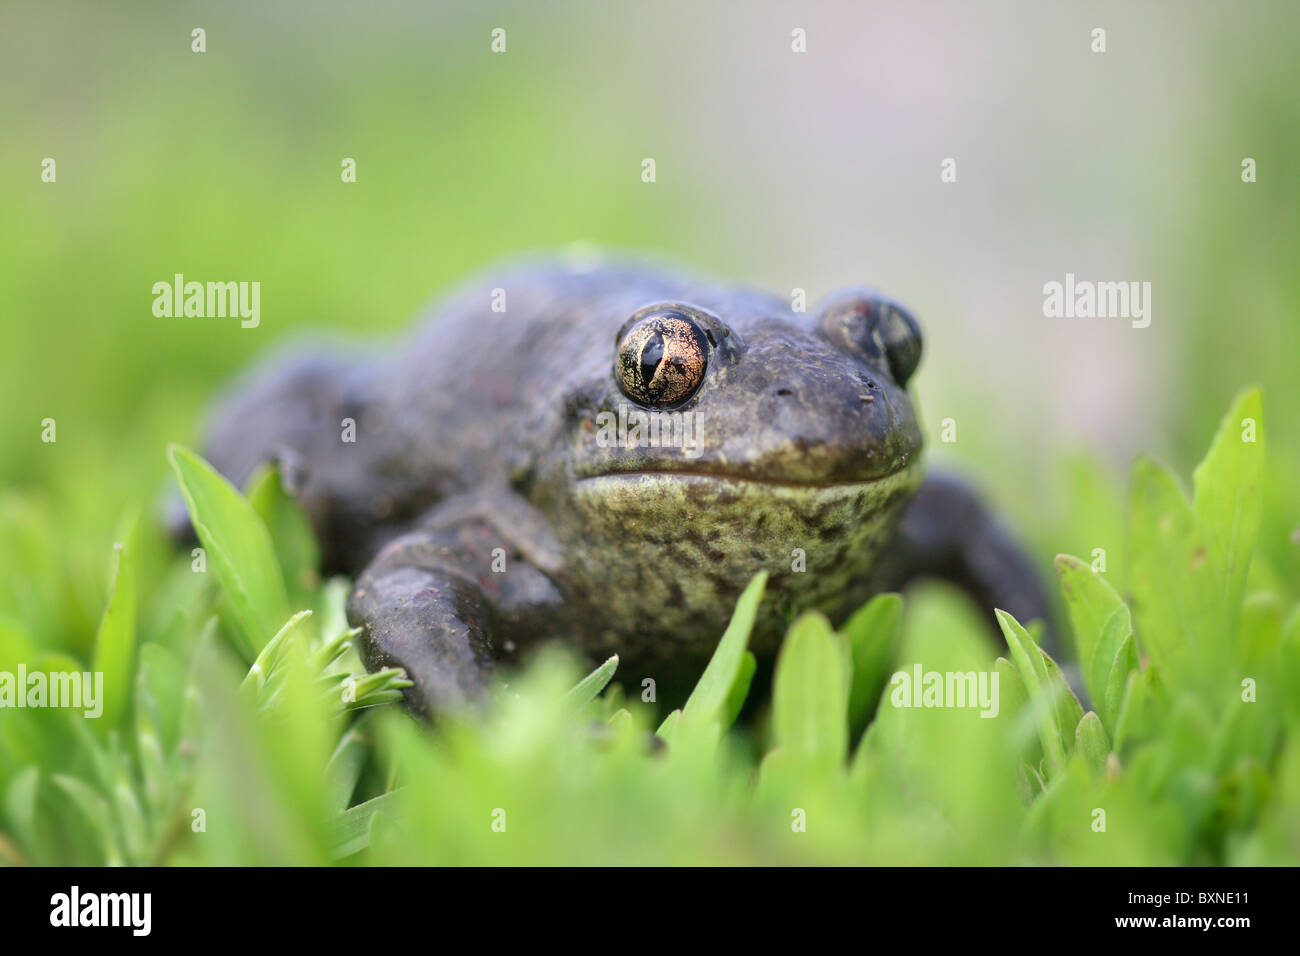 A wild spade-foot toad - Pelobates fuscus - on a beautiful green background - Stock Image